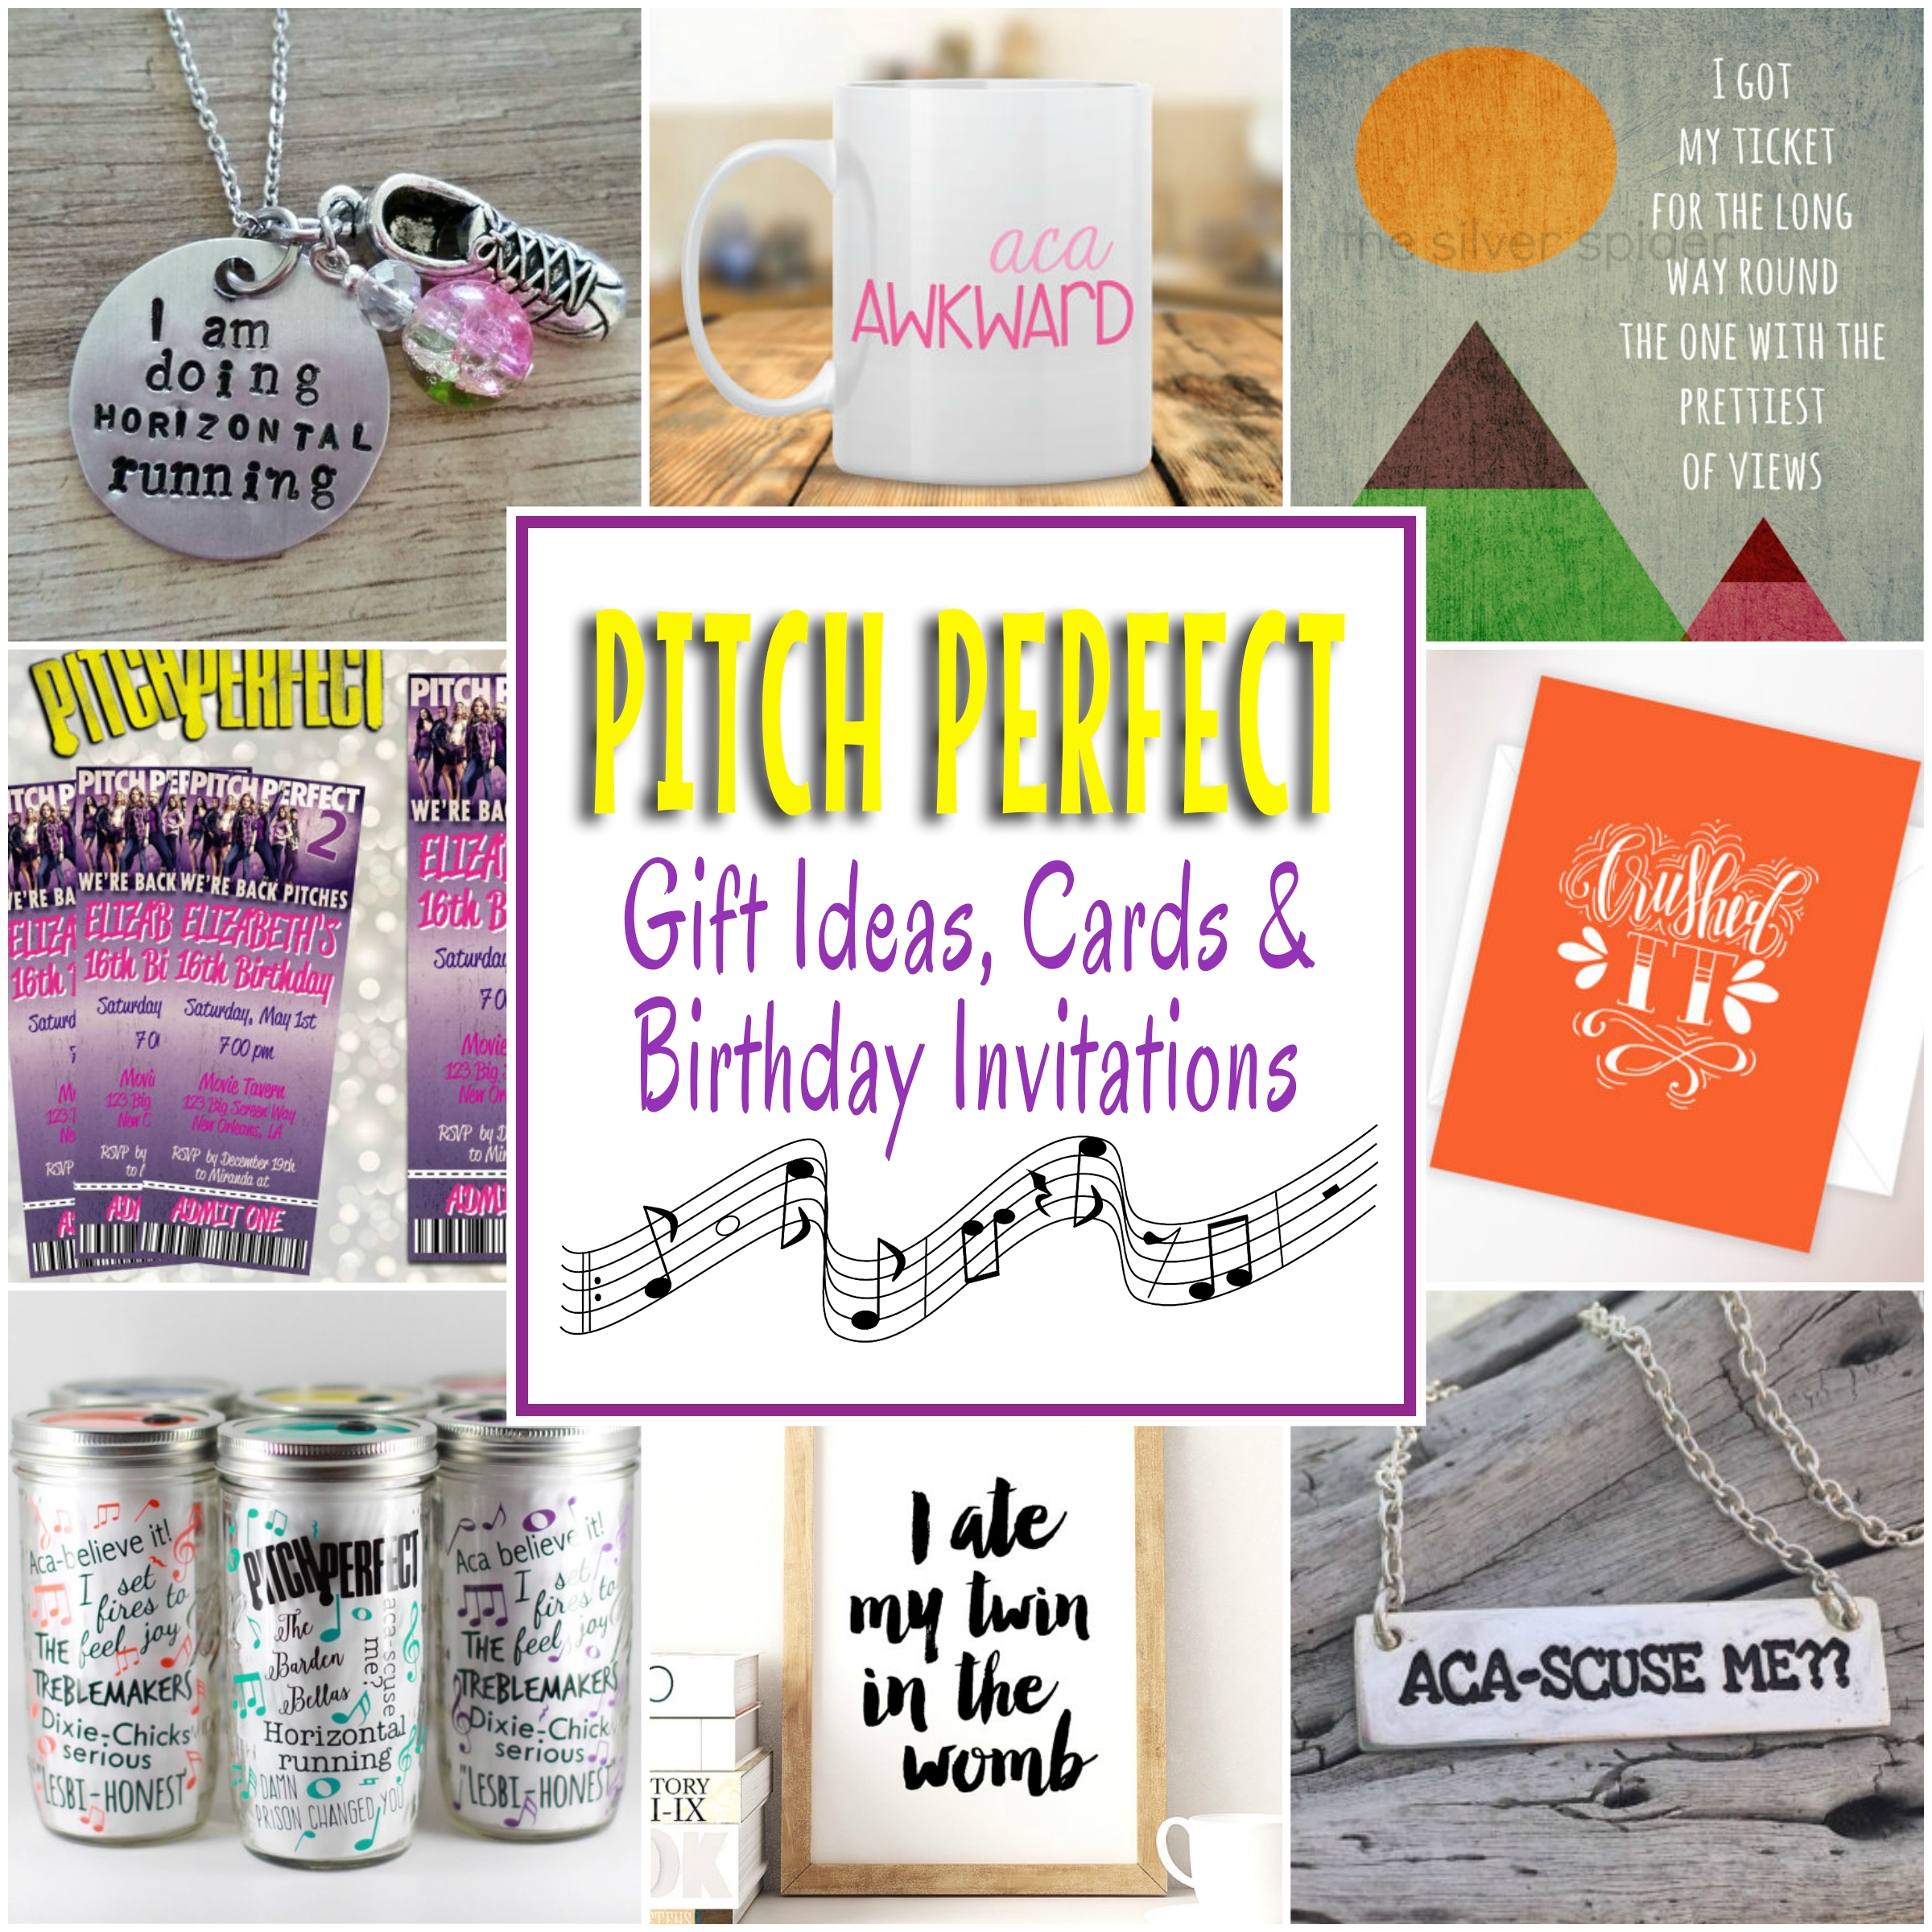 Pitch perfect gifts cards and birthday party invitations for A perfect gift for a friend